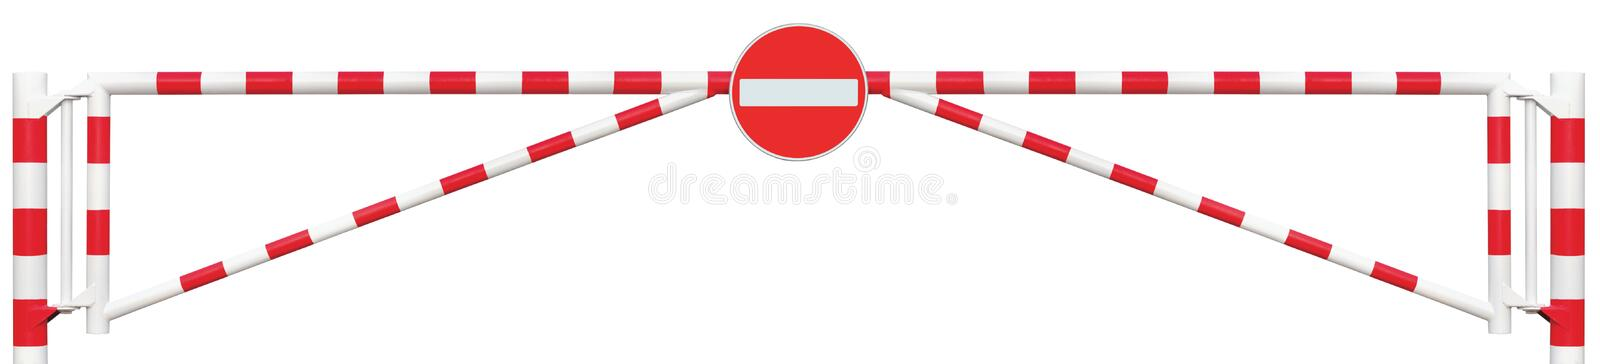 Gated Road Barrier Closeup, No Entry Sign Roadway Gate Bar Bright White And Red Traffic Stop Block Vehicle Security Point Isolated stock images